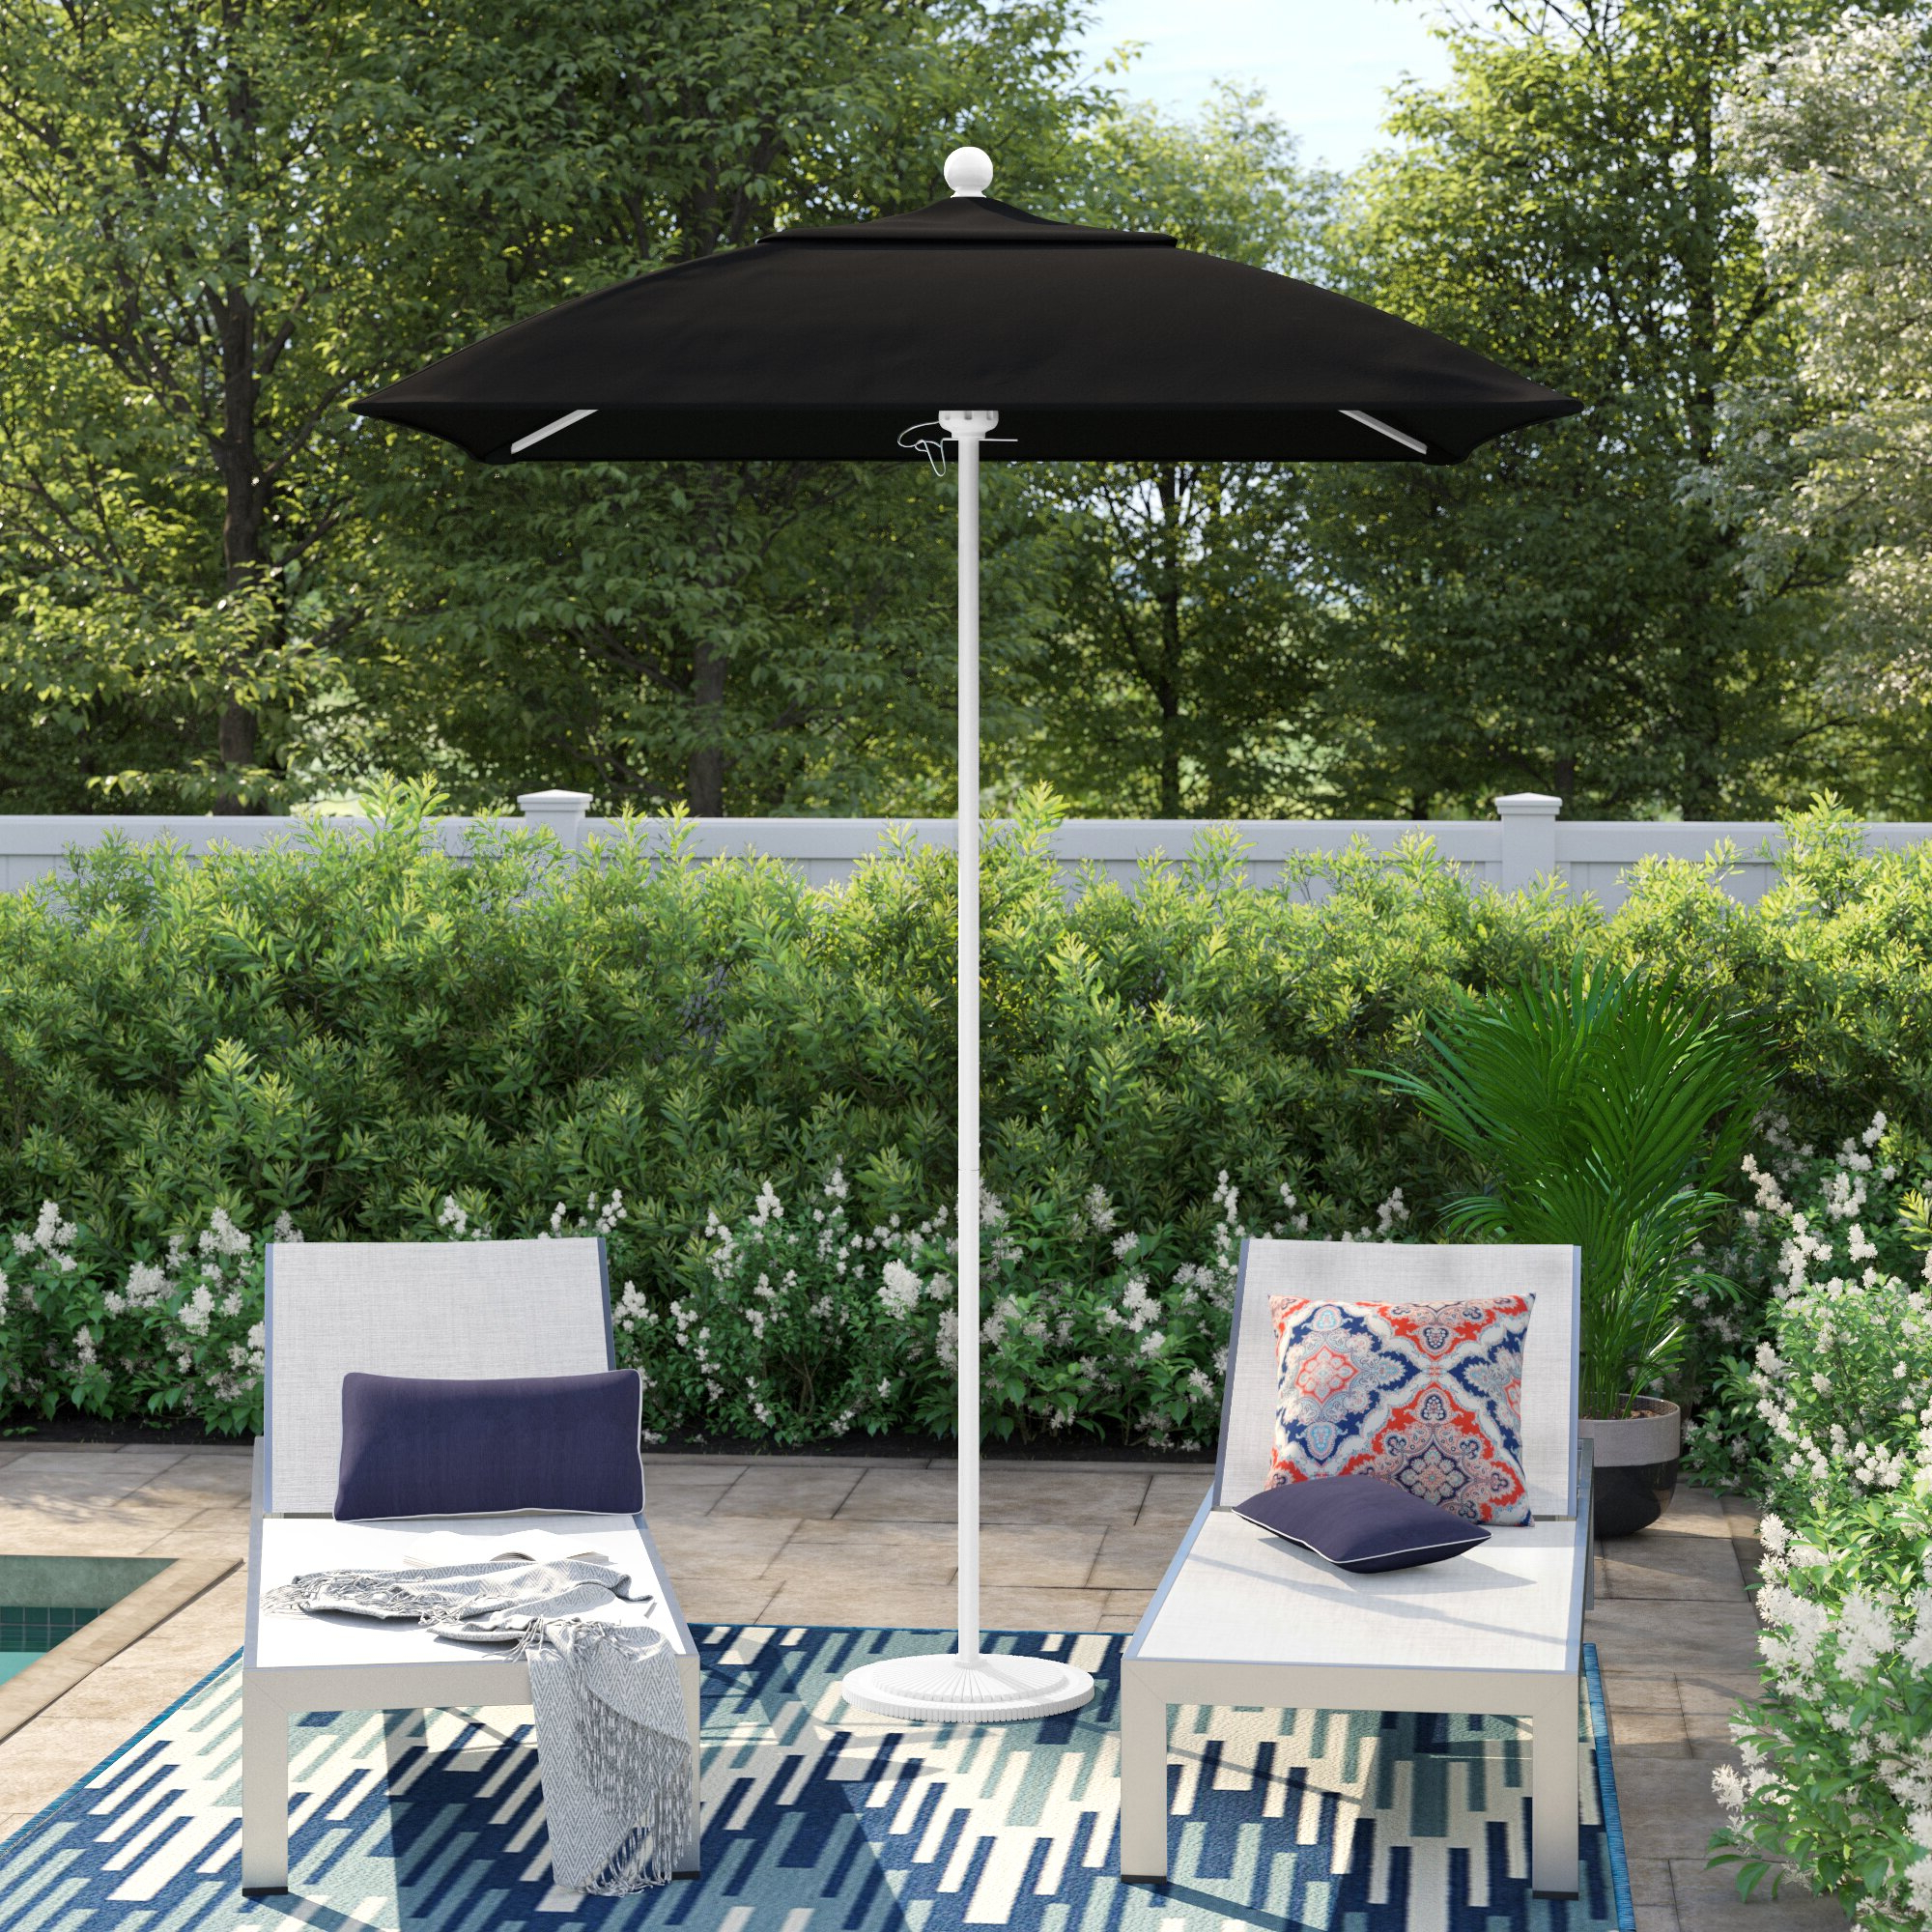 Fashionable Branam Lighted Umbrellas Pertaining To Benson 6' Square Market Sunbrella Umbrella (View 7 of 20)